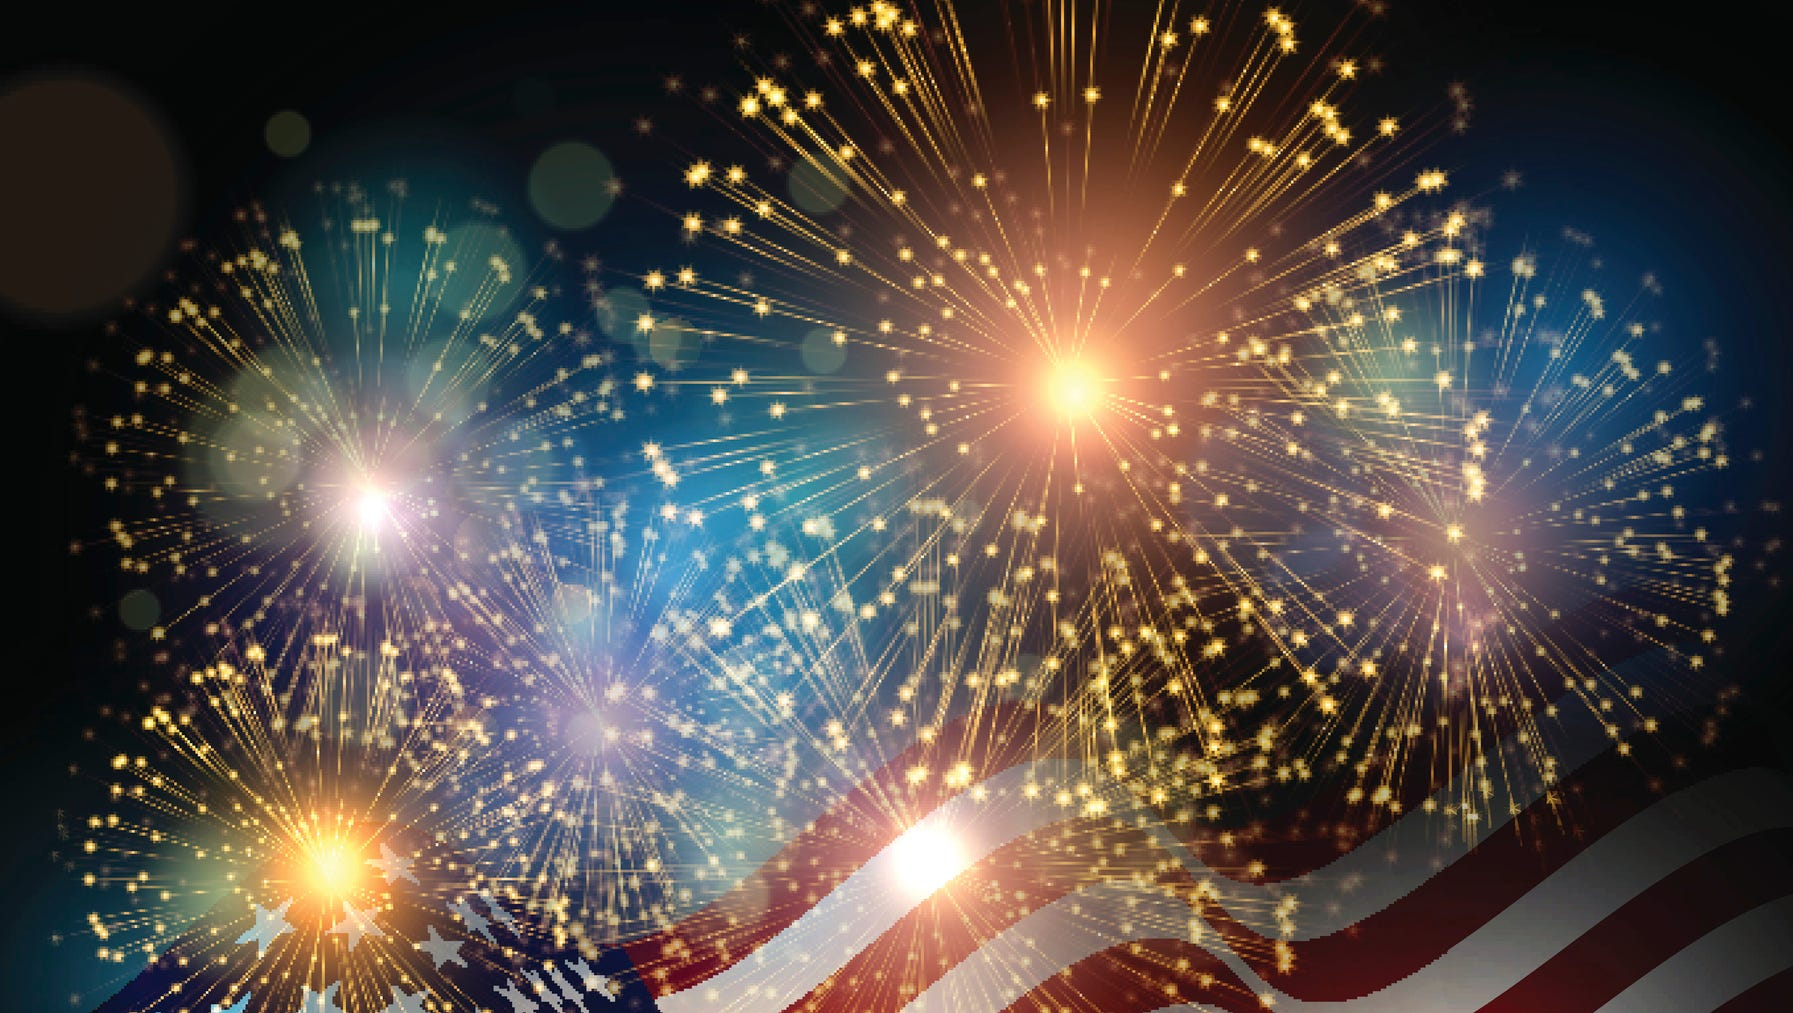 Pleasant Hill Ashland Ohio Christmas In July 2021 Celebrate The Usa With These Independence Day Events Fireworks